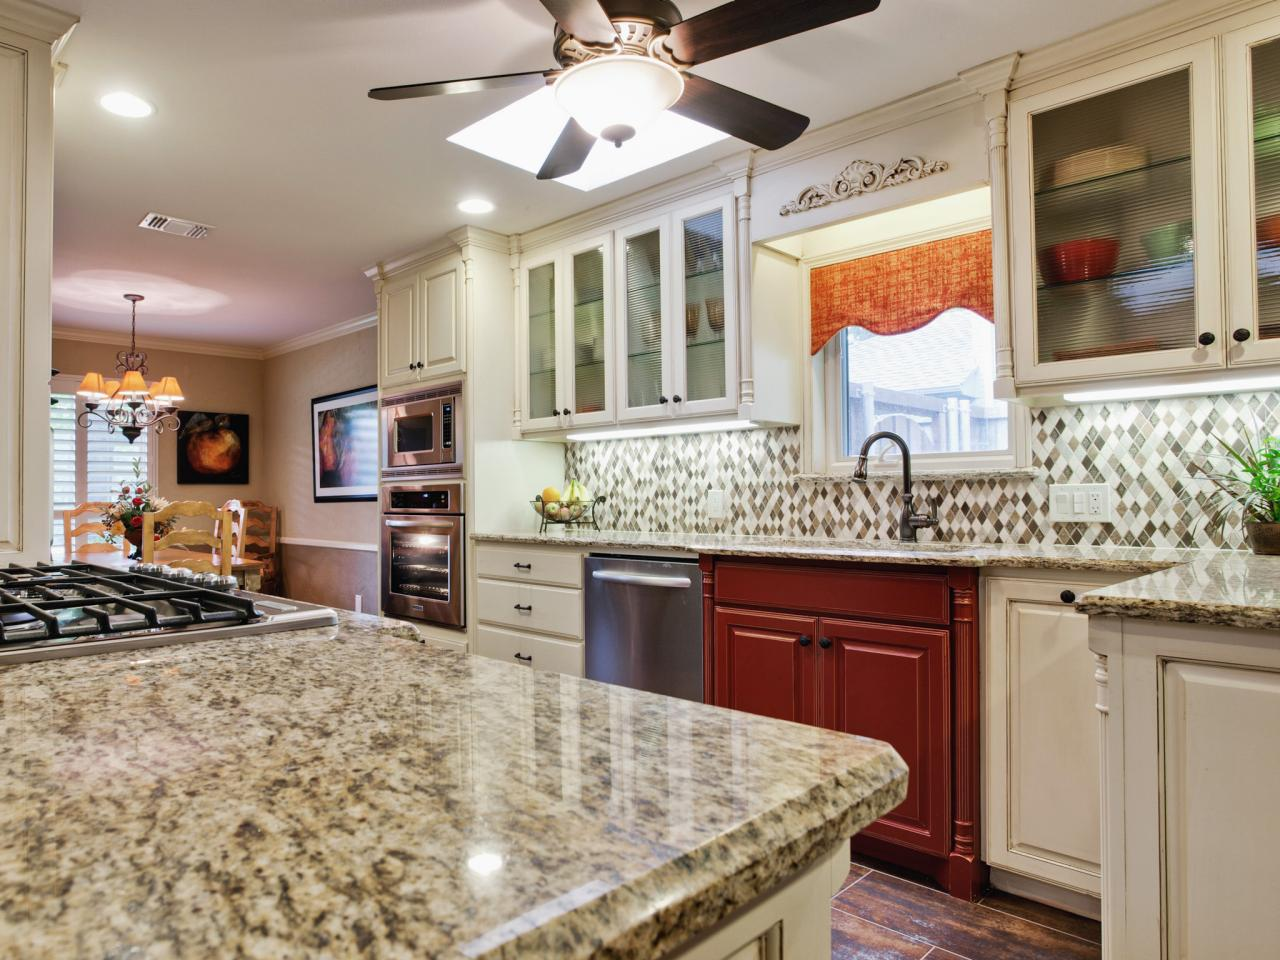 Pictures Granite Kitchen Countertop Granite with Backsplash